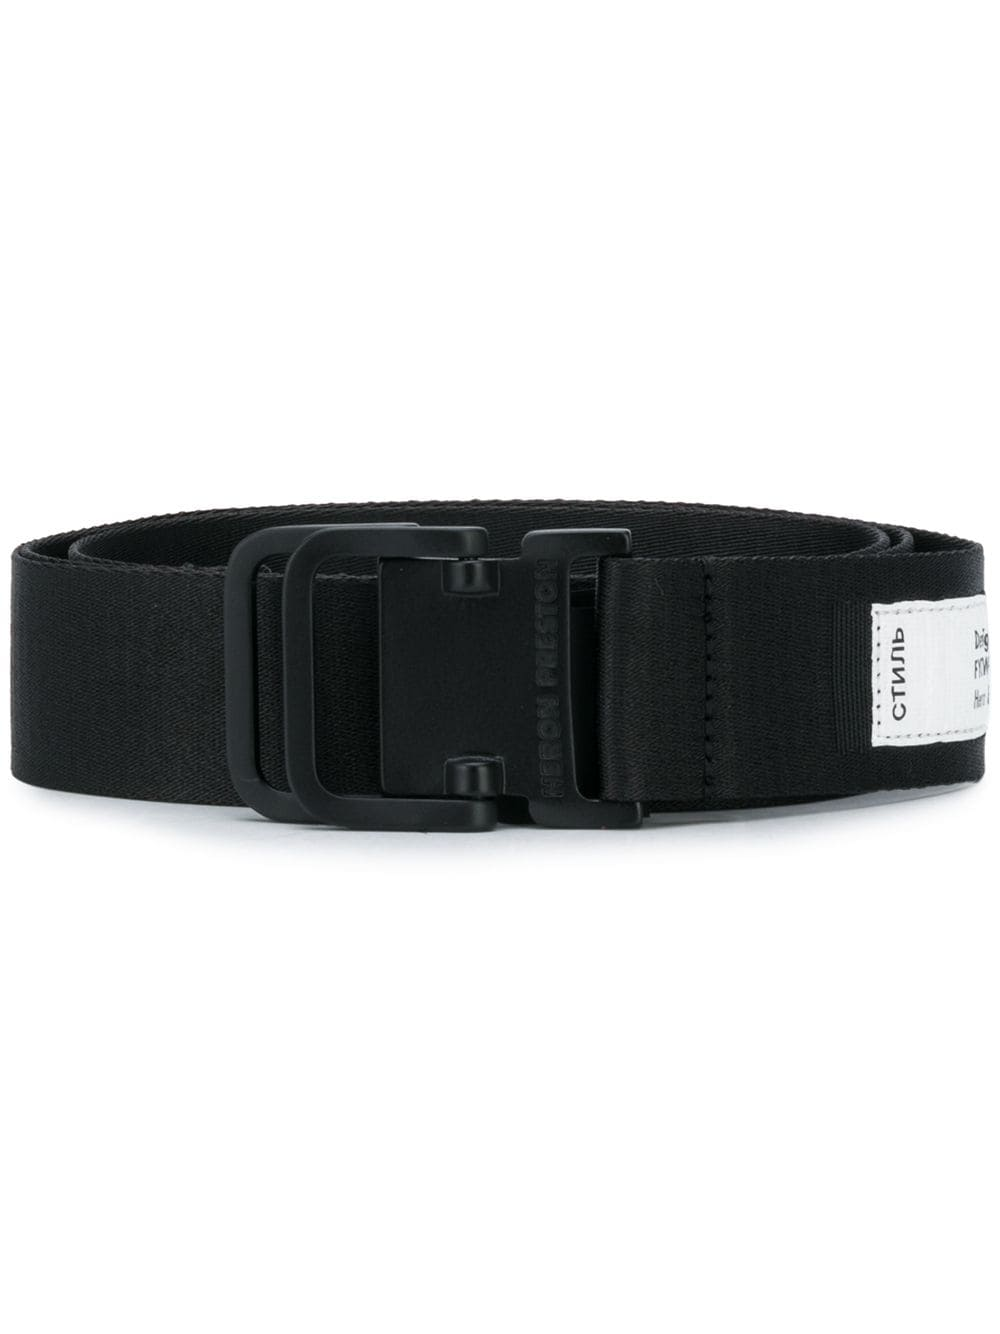 HERON PRESTON Tactical Tape Belt